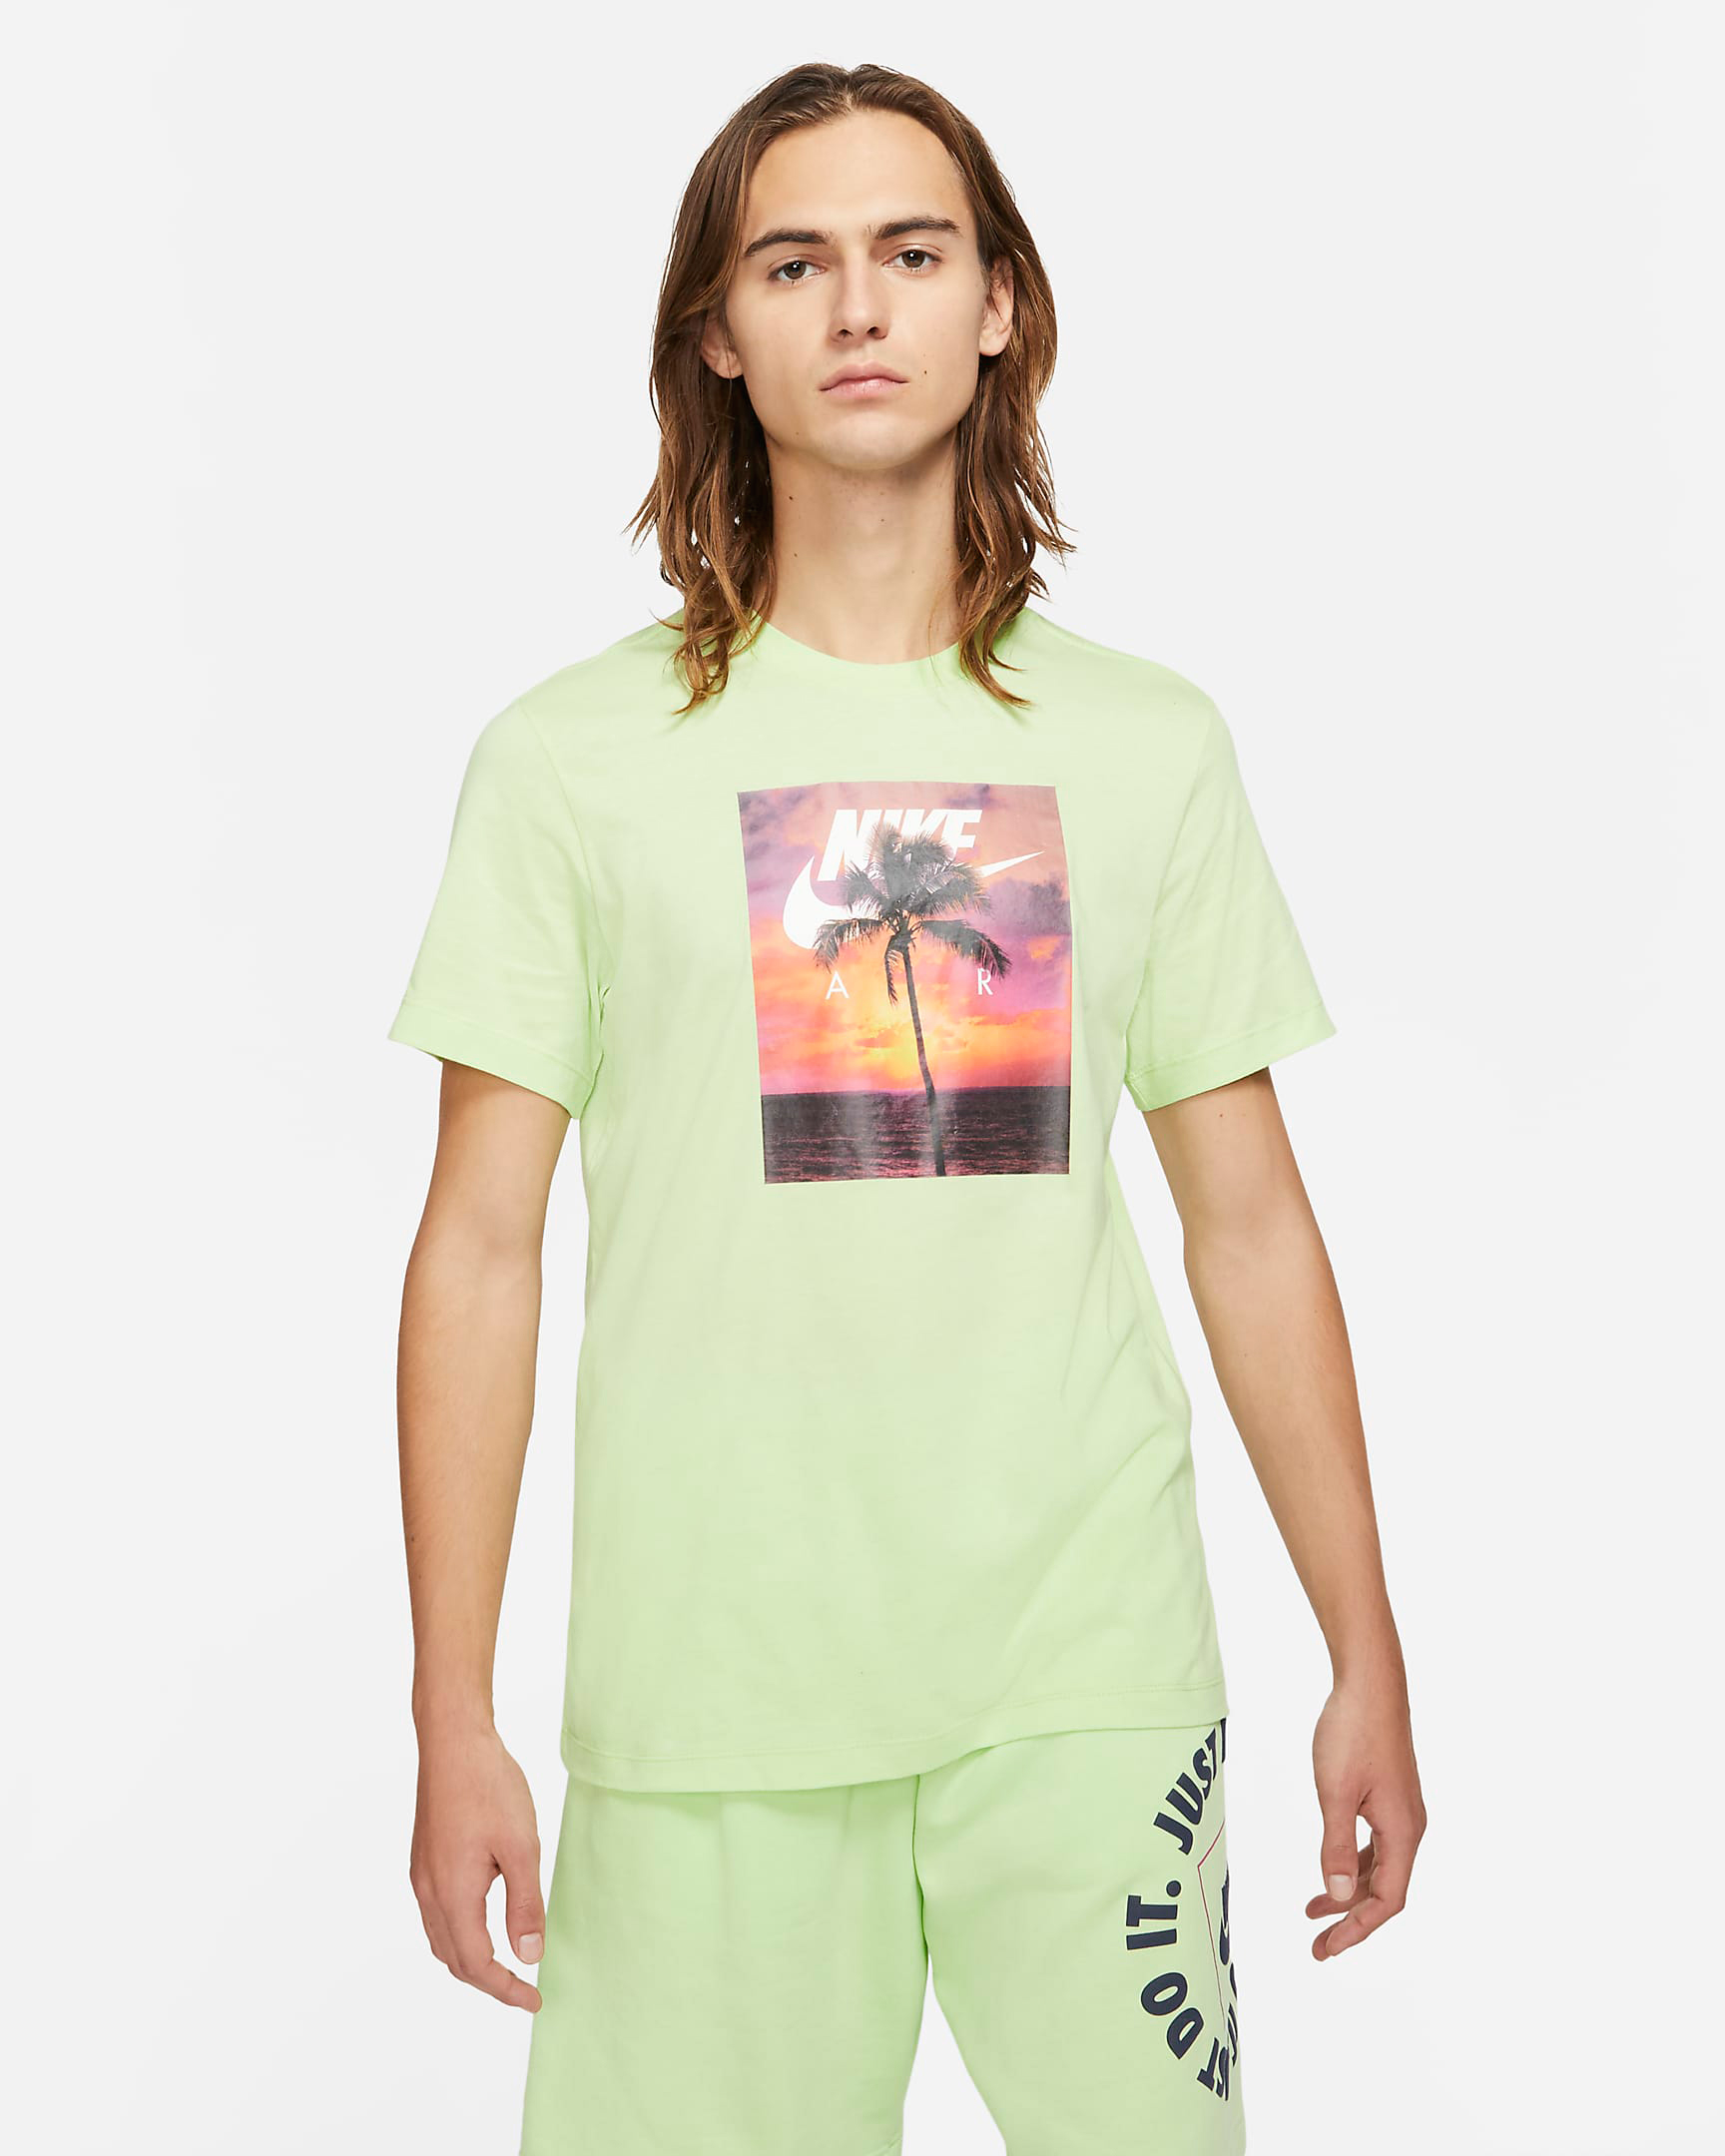 nike-light-liquid-lime-palm-tree-sunset-shirt